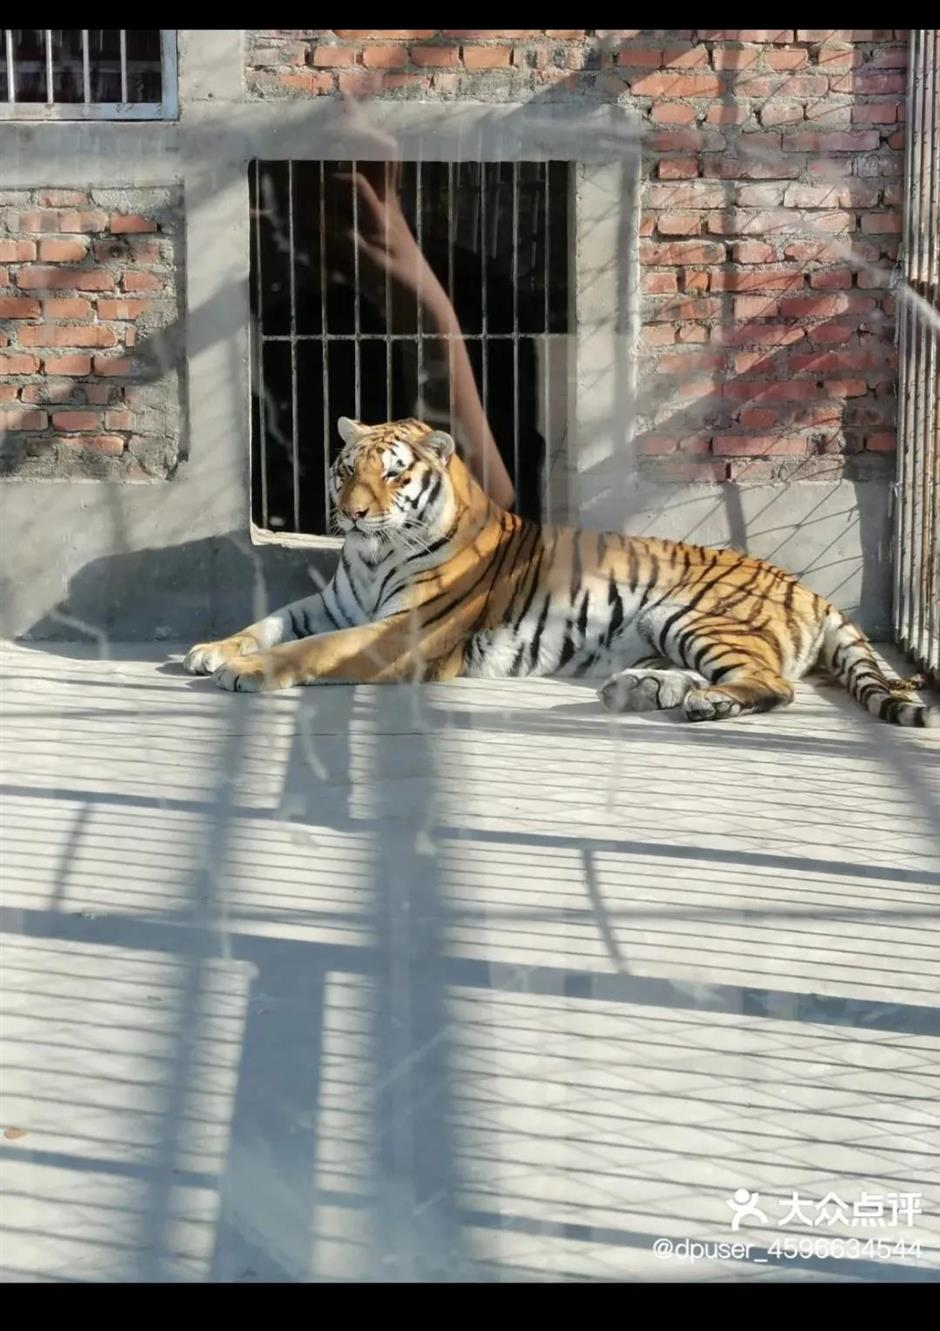 Escaped tigers shot dead after keeper killed